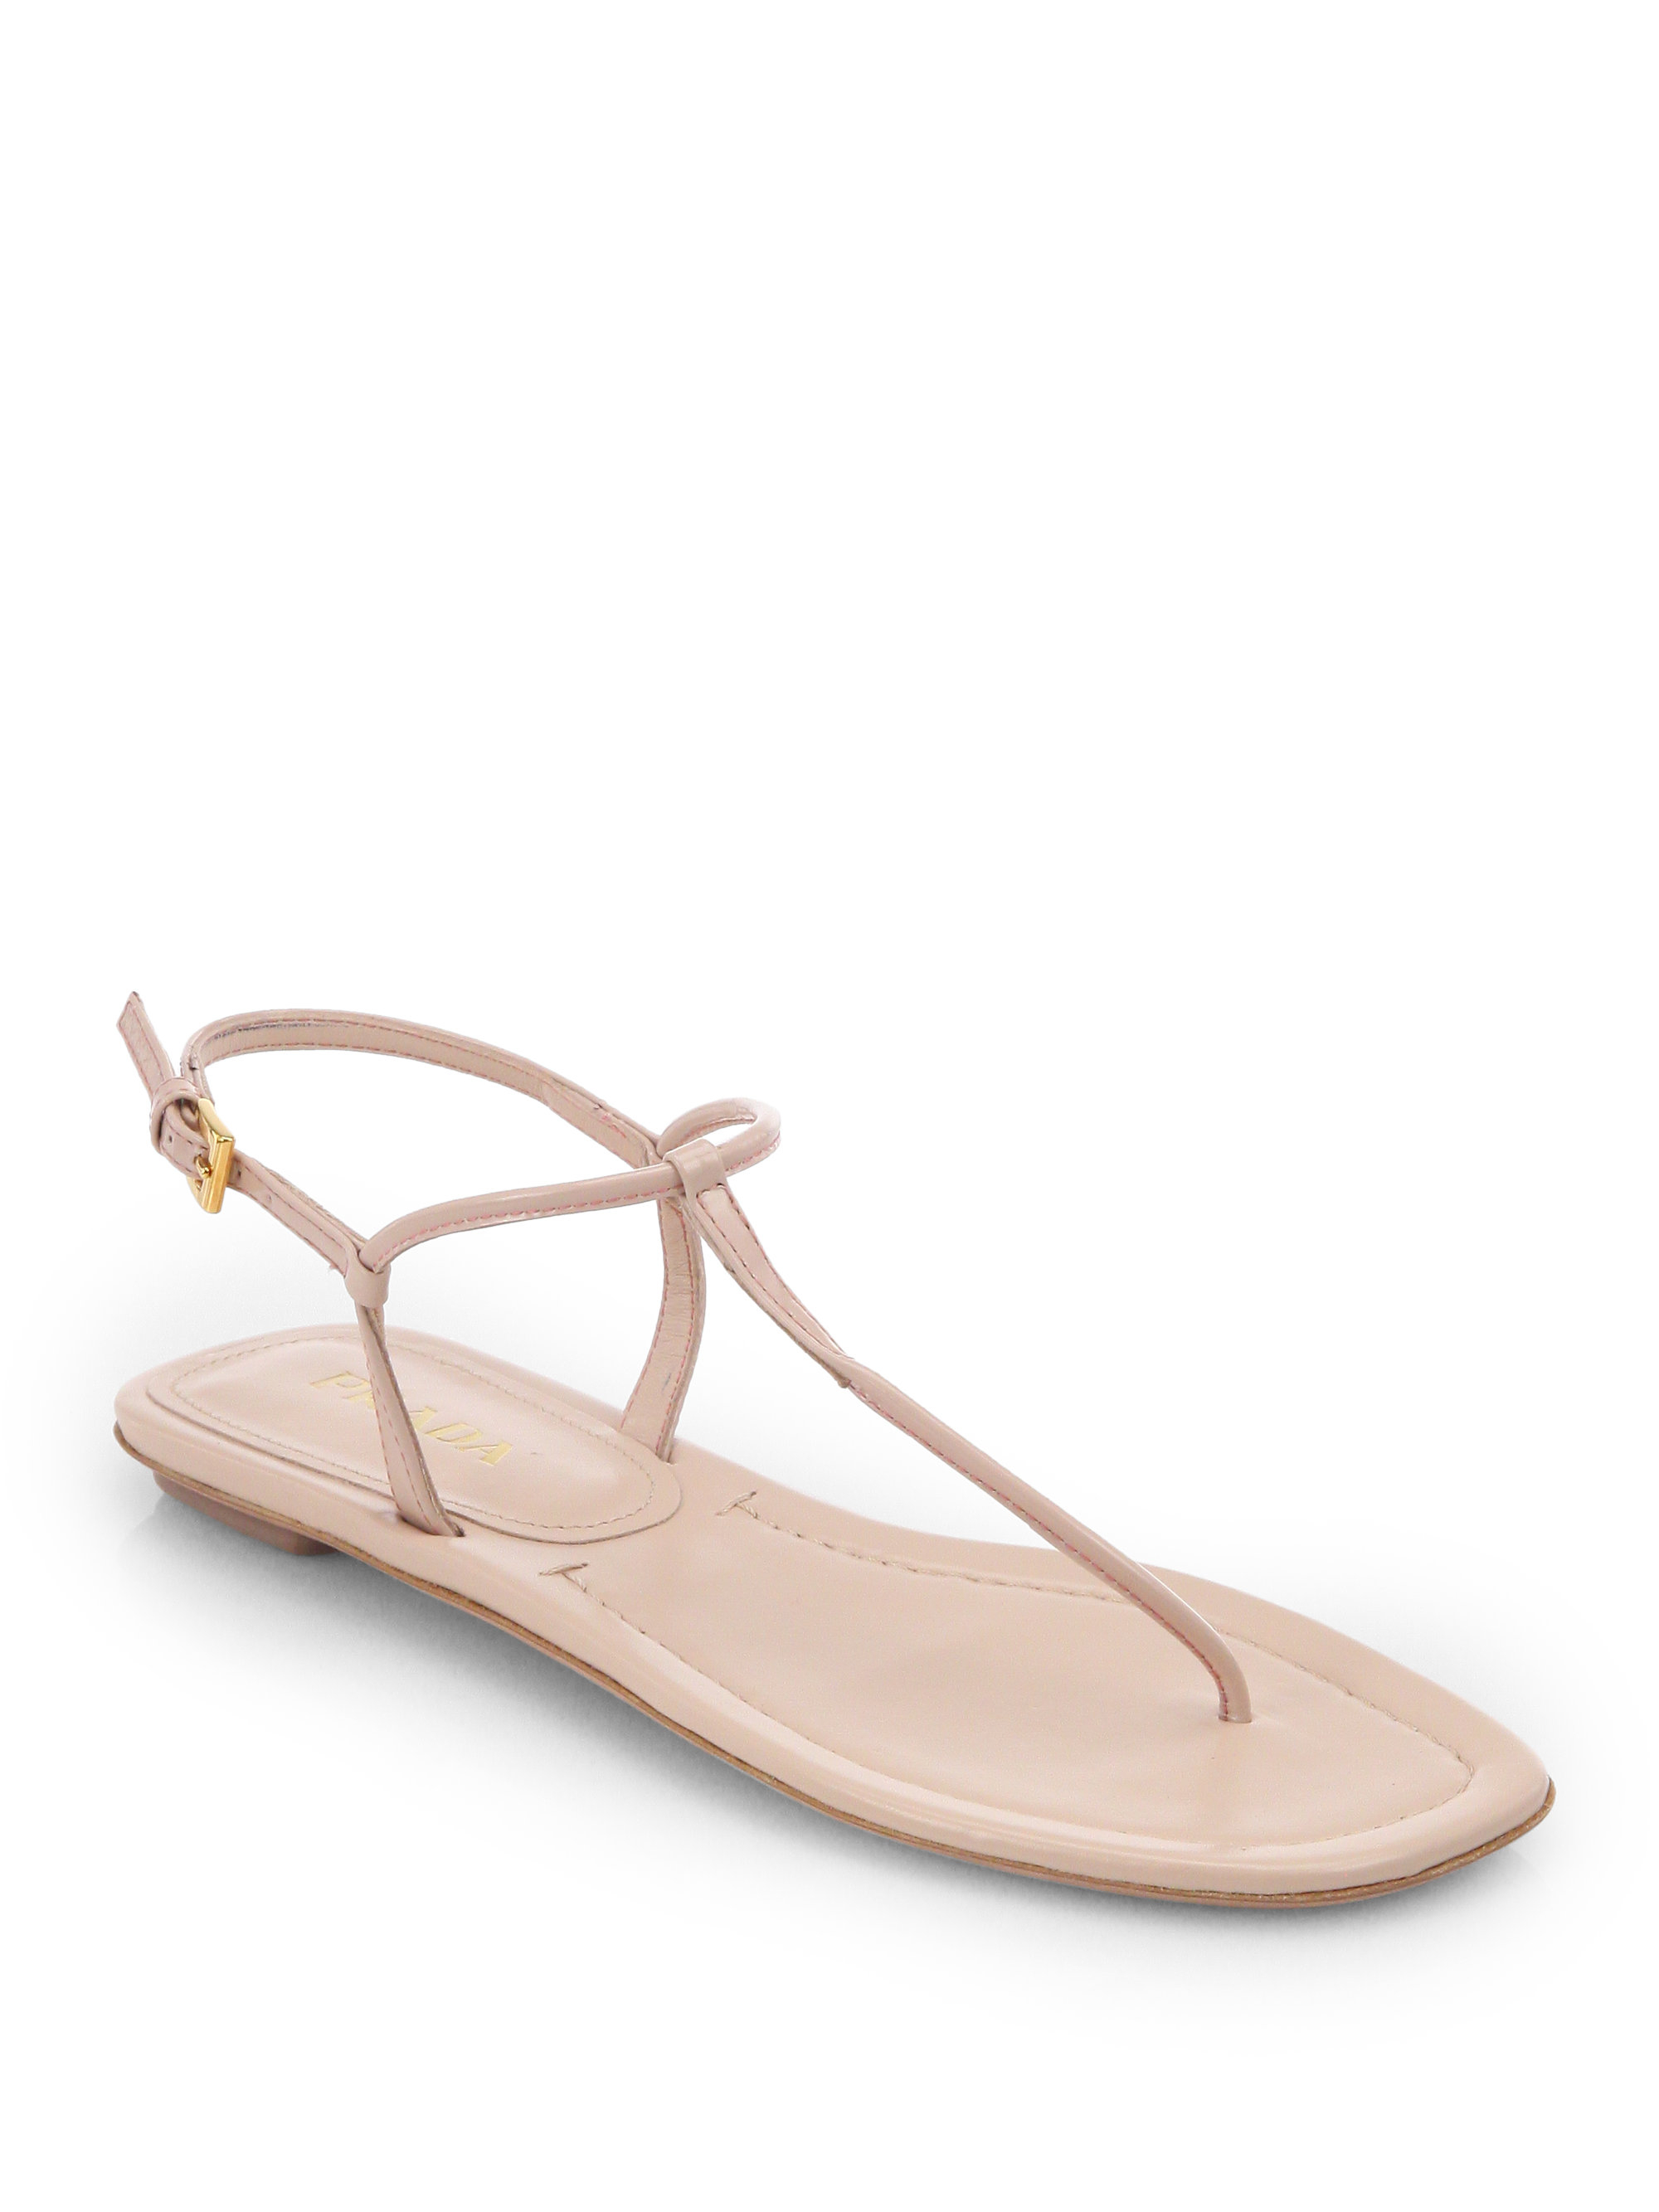 2a5394af6ed8 Lyst - Prada Patent Leather Thong Sandals in Pink